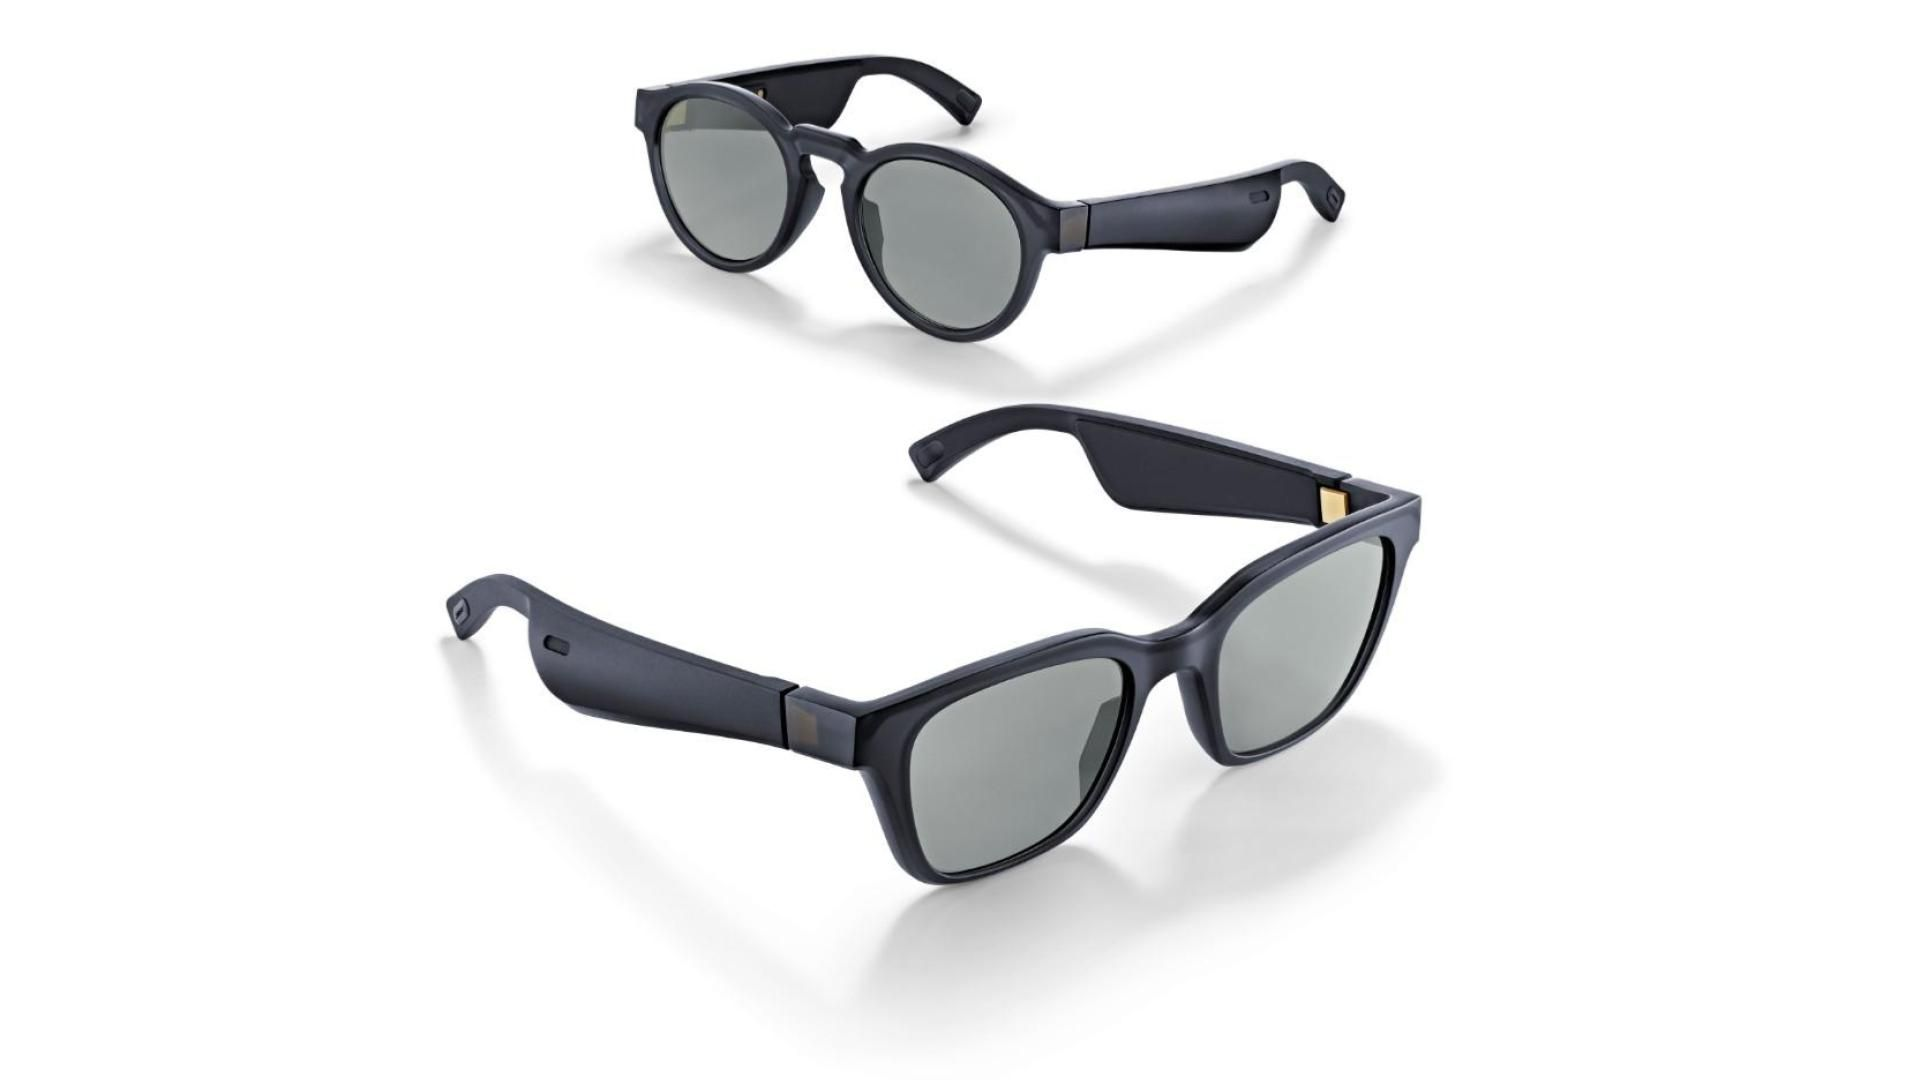 072a45b06ad9 Bose Frames Smart Glasses Pair UV Protection With - Audio #WearablesNews  #IOTNews #AllNews